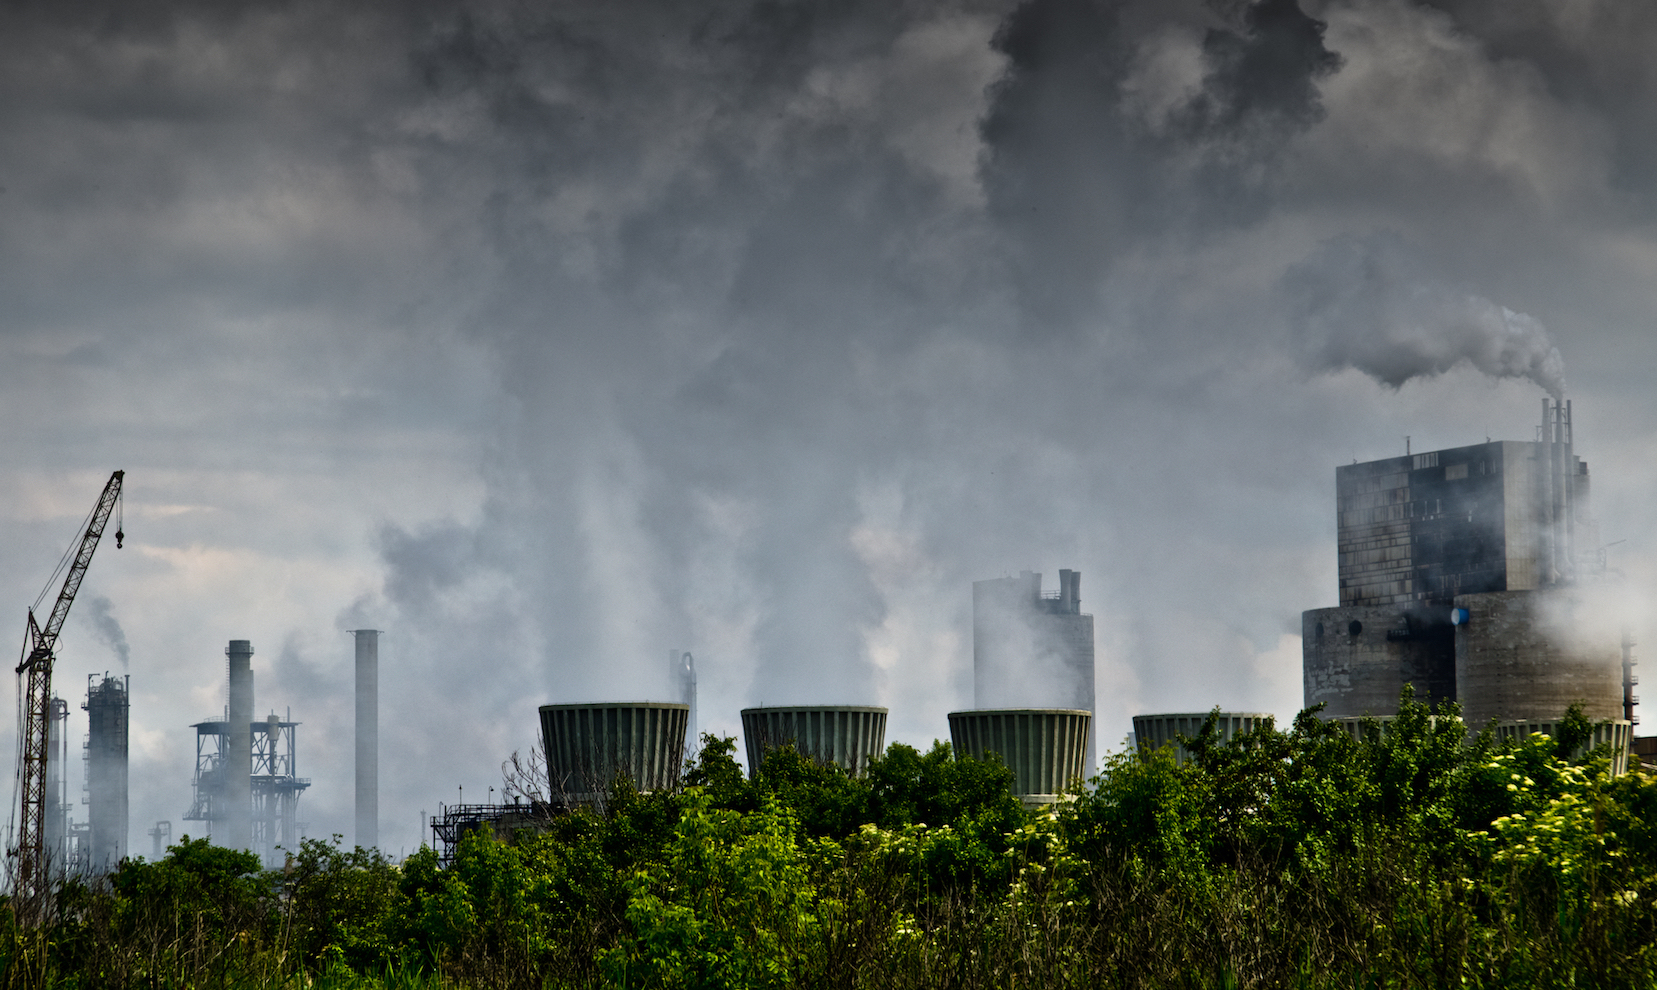 shutting down coal power plants, the new rules would allow states to lower their pollution standards and keep these plants open.